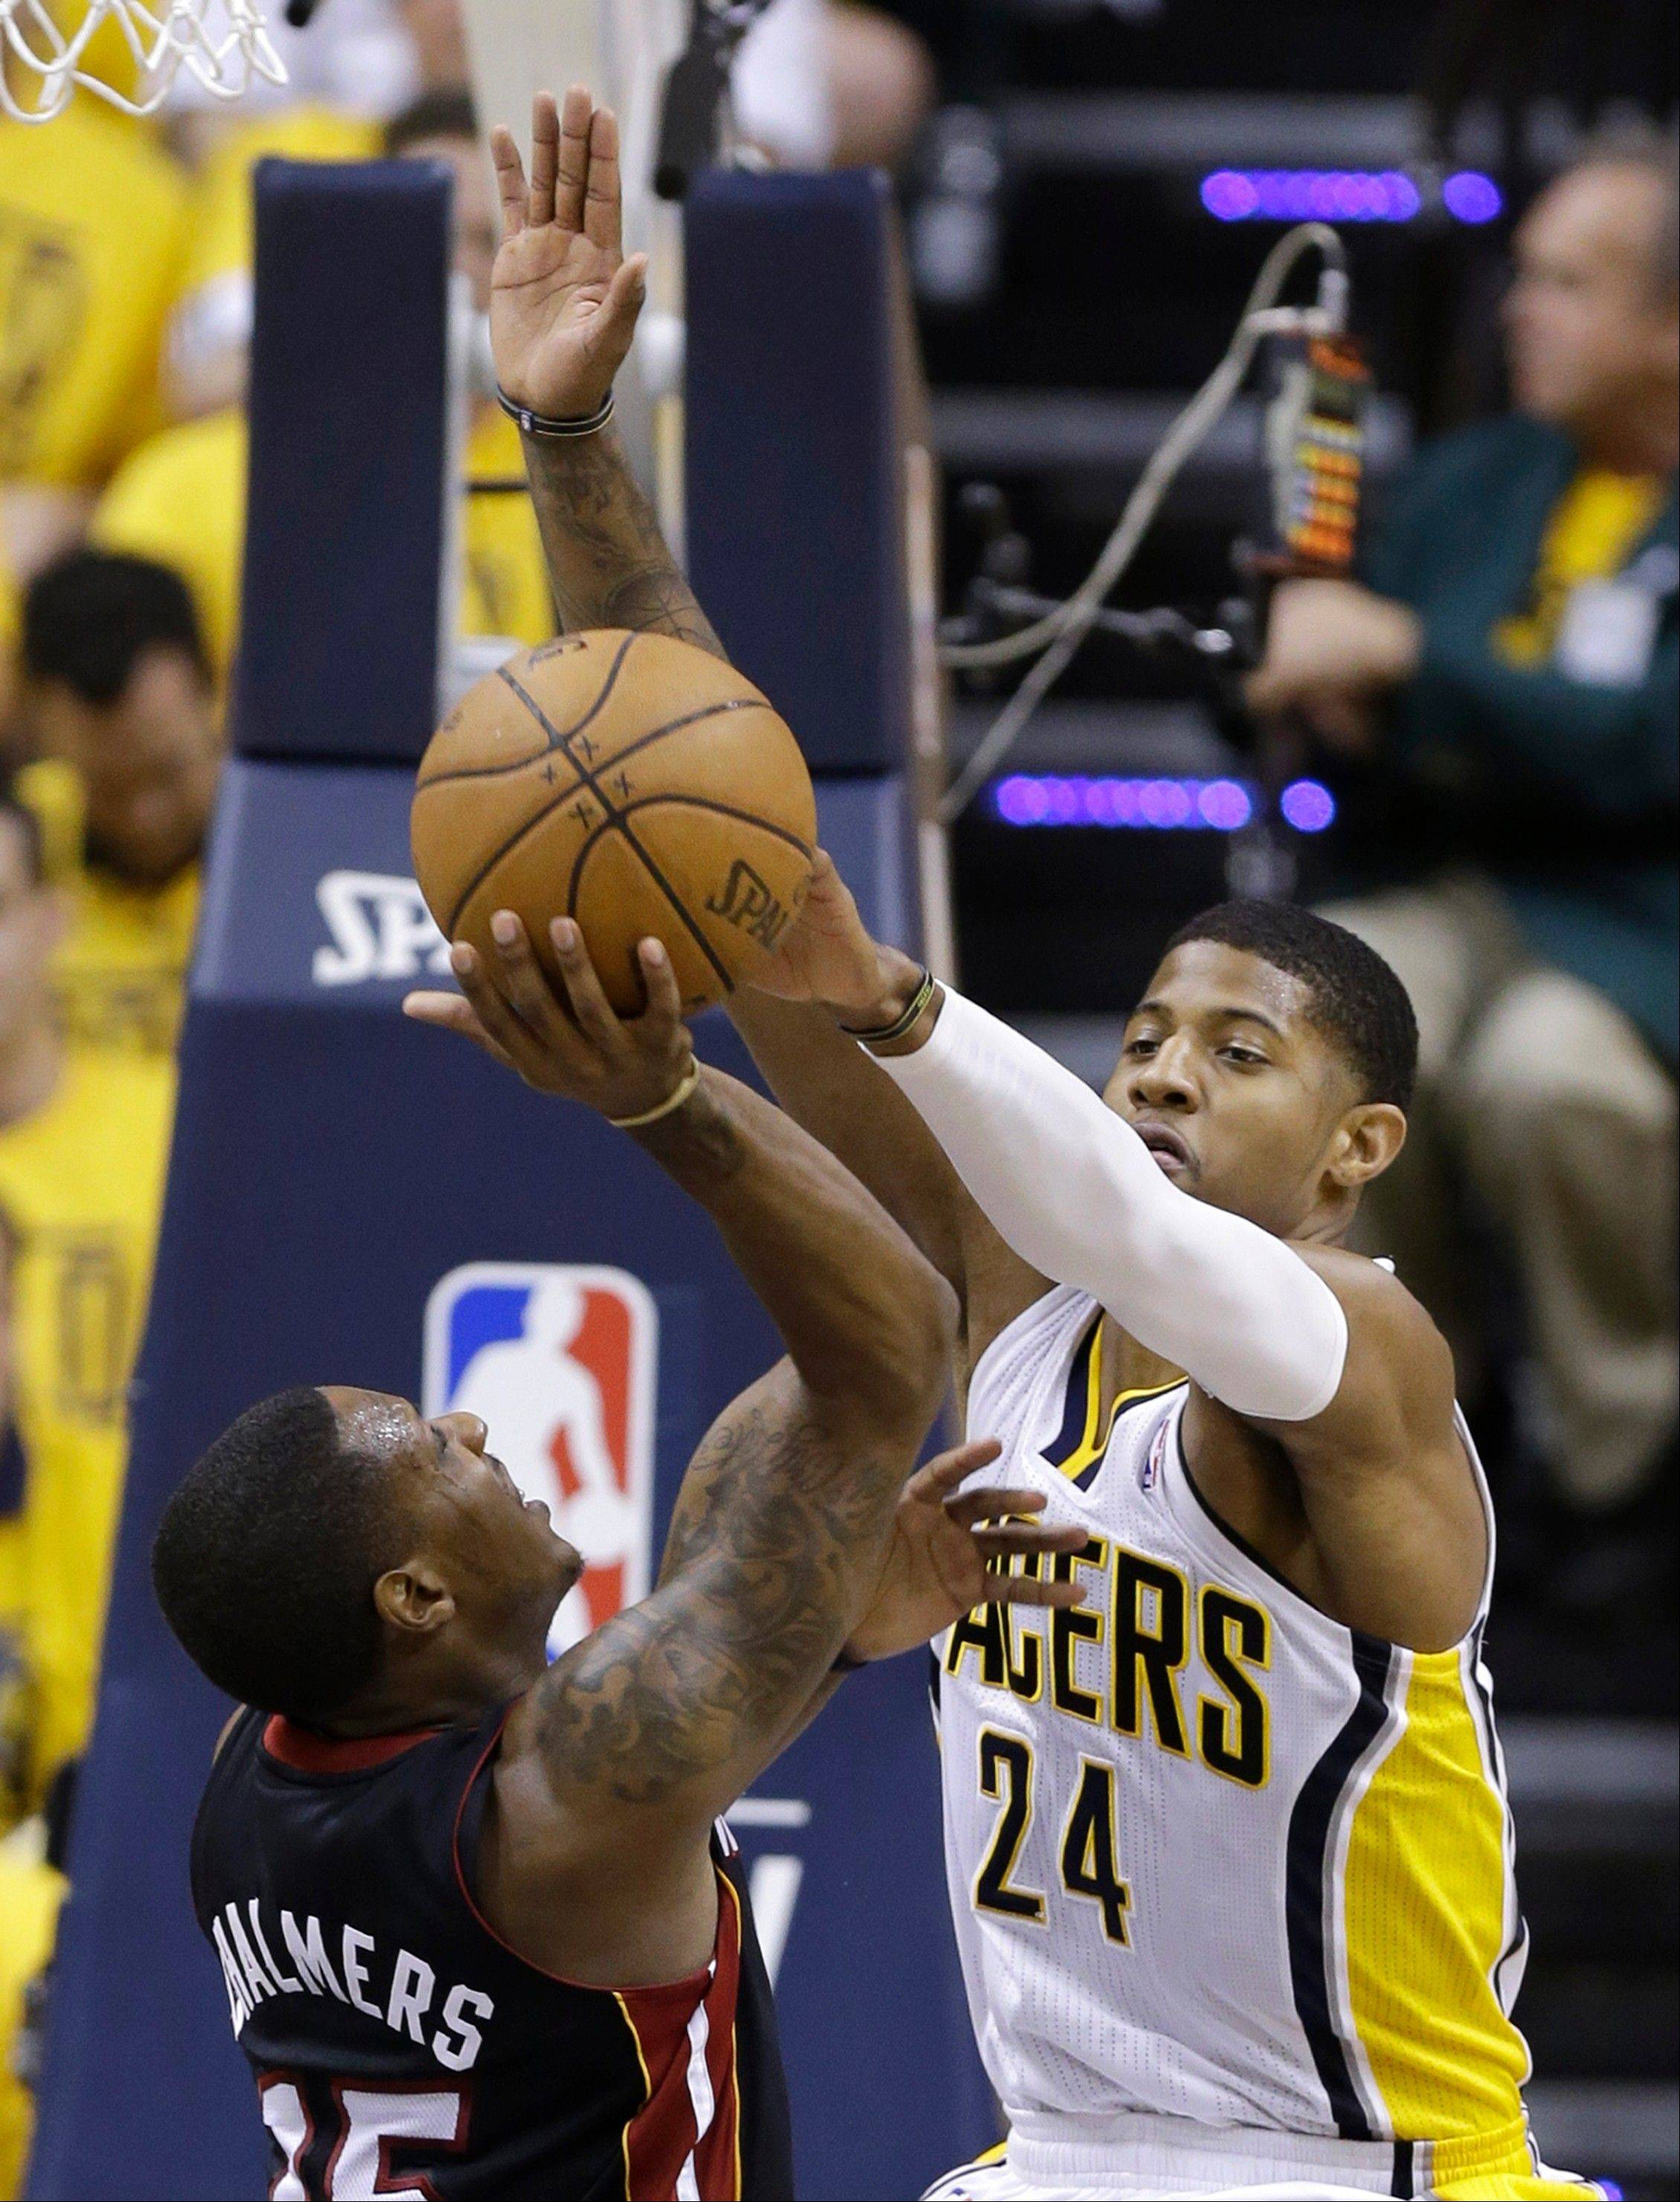 Miami Heat's Mario Chalmers has his shot blocked by Indiana Pacers' Paul George (24) during the second half of Game 4 of the NBA basketball Eastern Conference finals, Tuesday, May 28, 2013, in Indianapolis. (AP Photo/Michael Conroy)